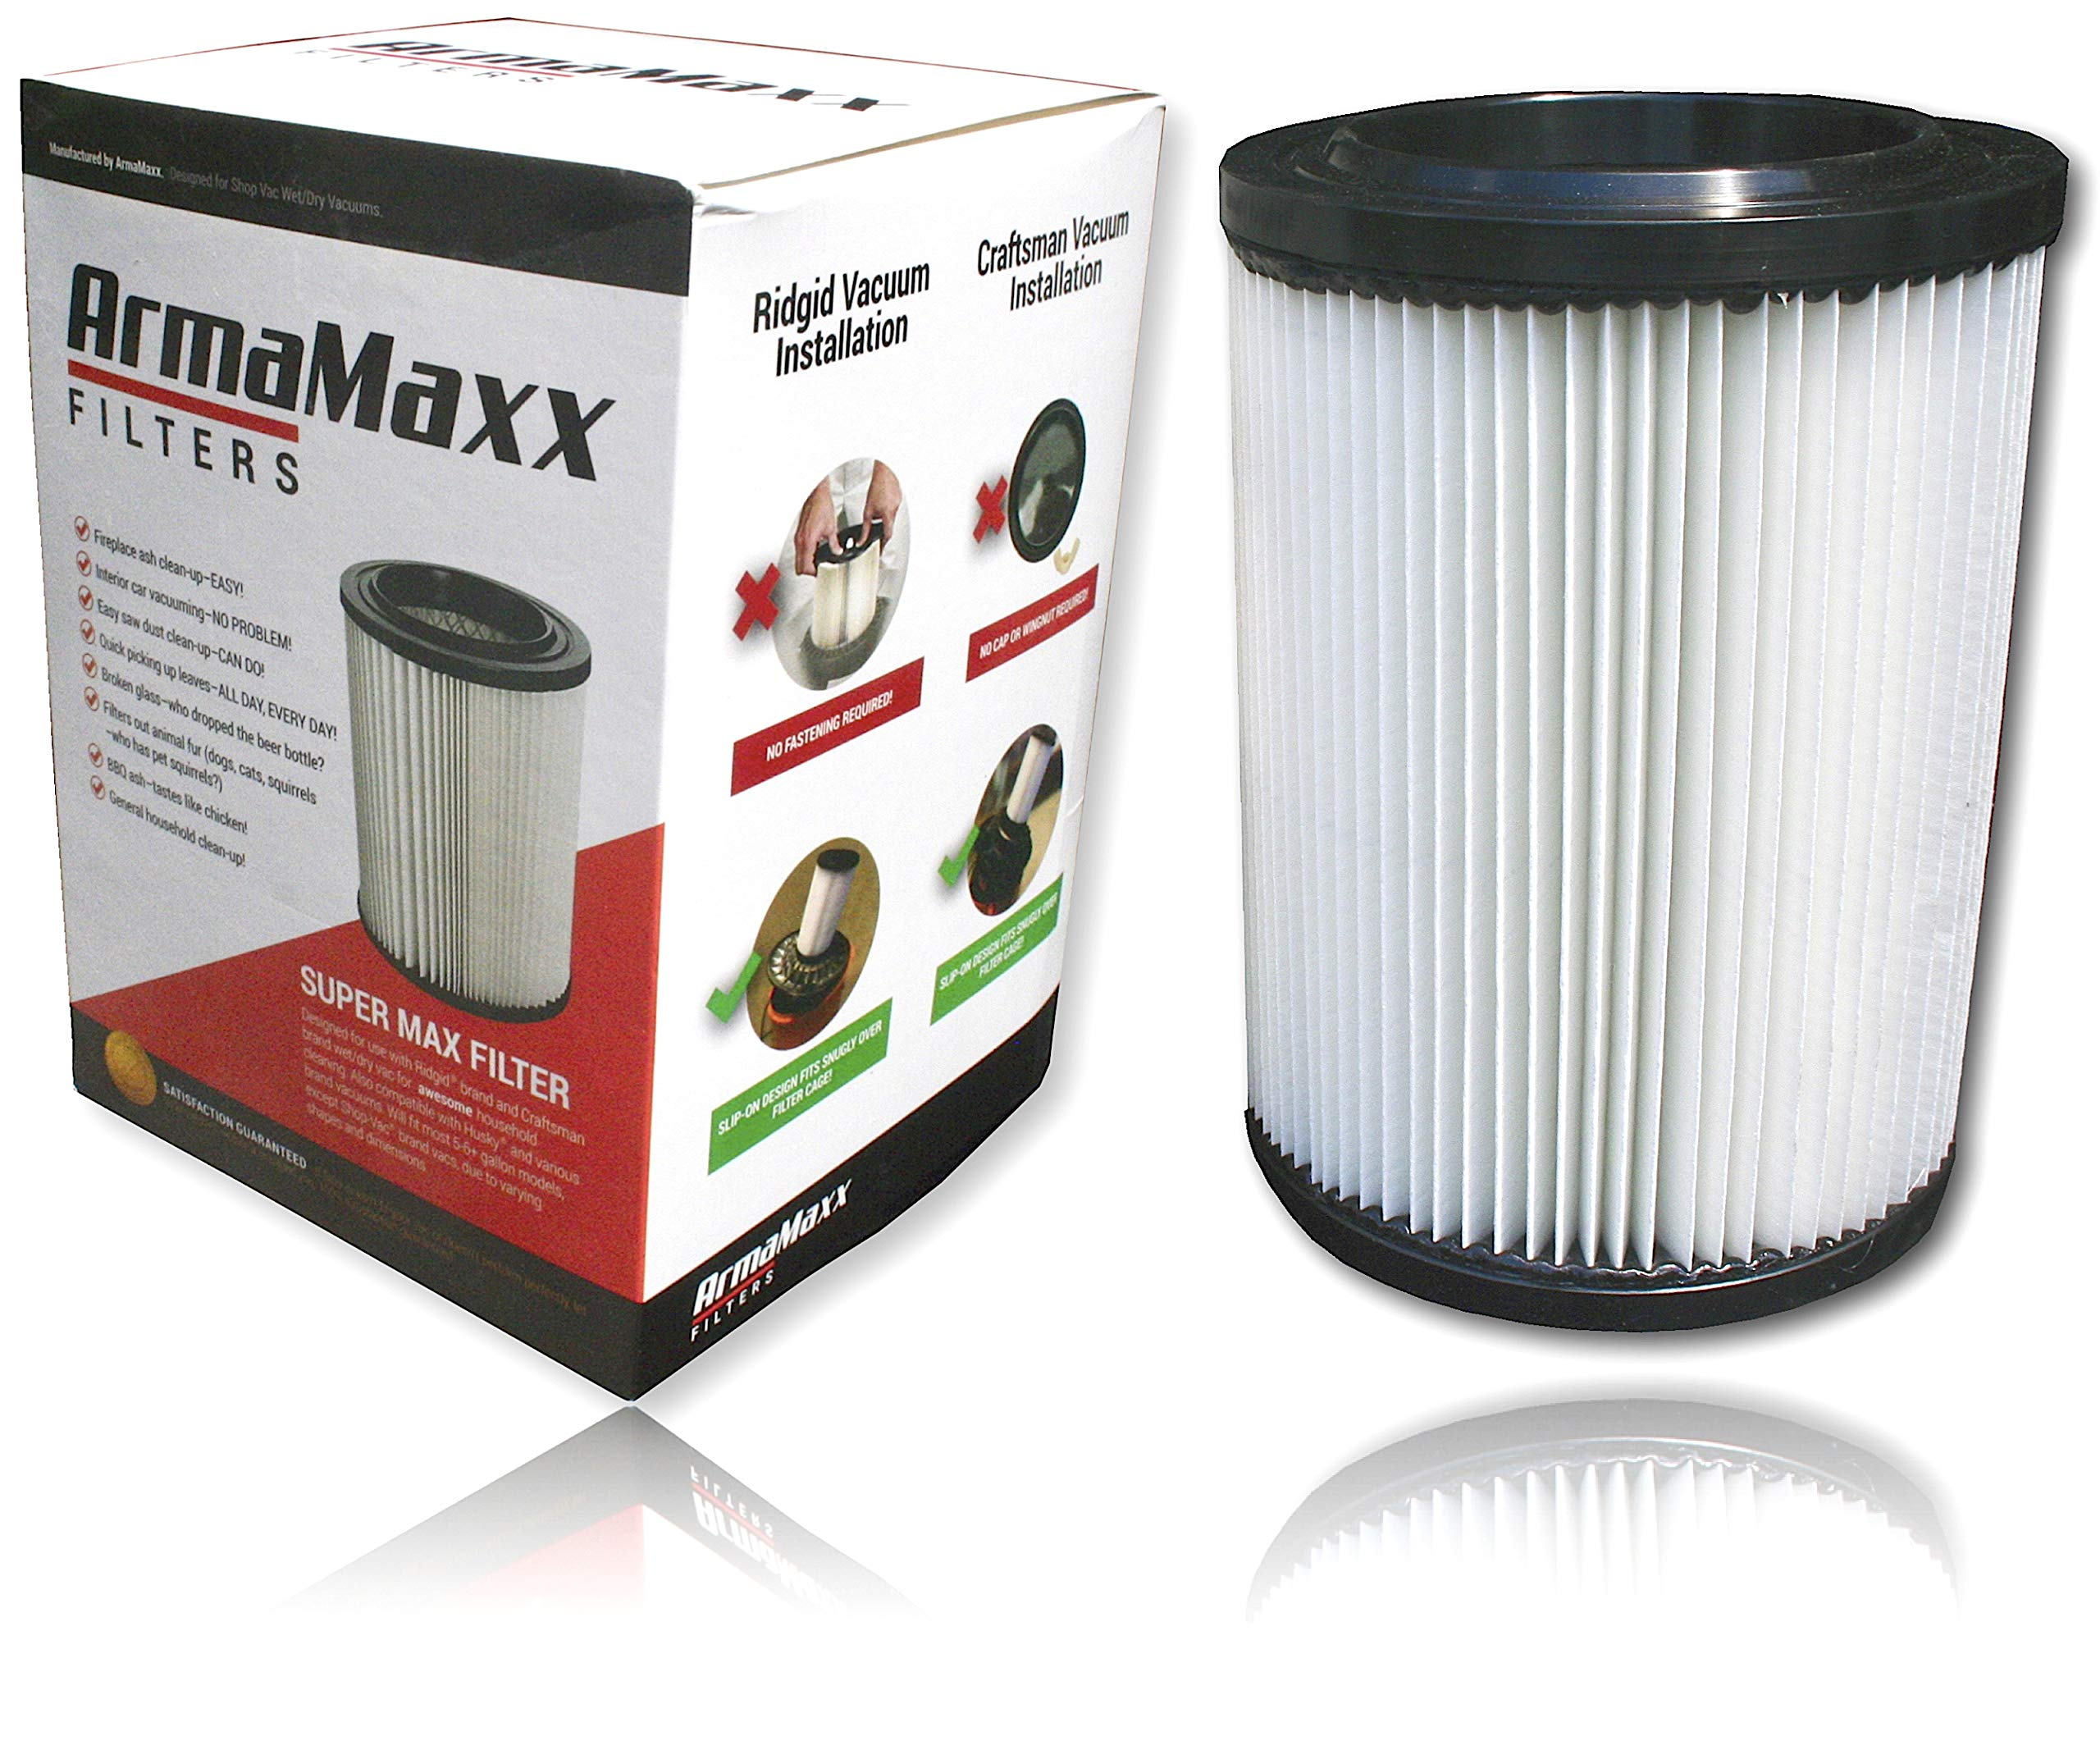 Premium Shop Vac Filter 917816, Supermax Ridgid Craftsman 17816 Vacuum Replacement - 17907 Pleated 3-Layer – 5 Gallon and Up vf 5000 vf 6000 Filters Not Hepa– Easy Cleaning of Ash, Sawdust, Glass